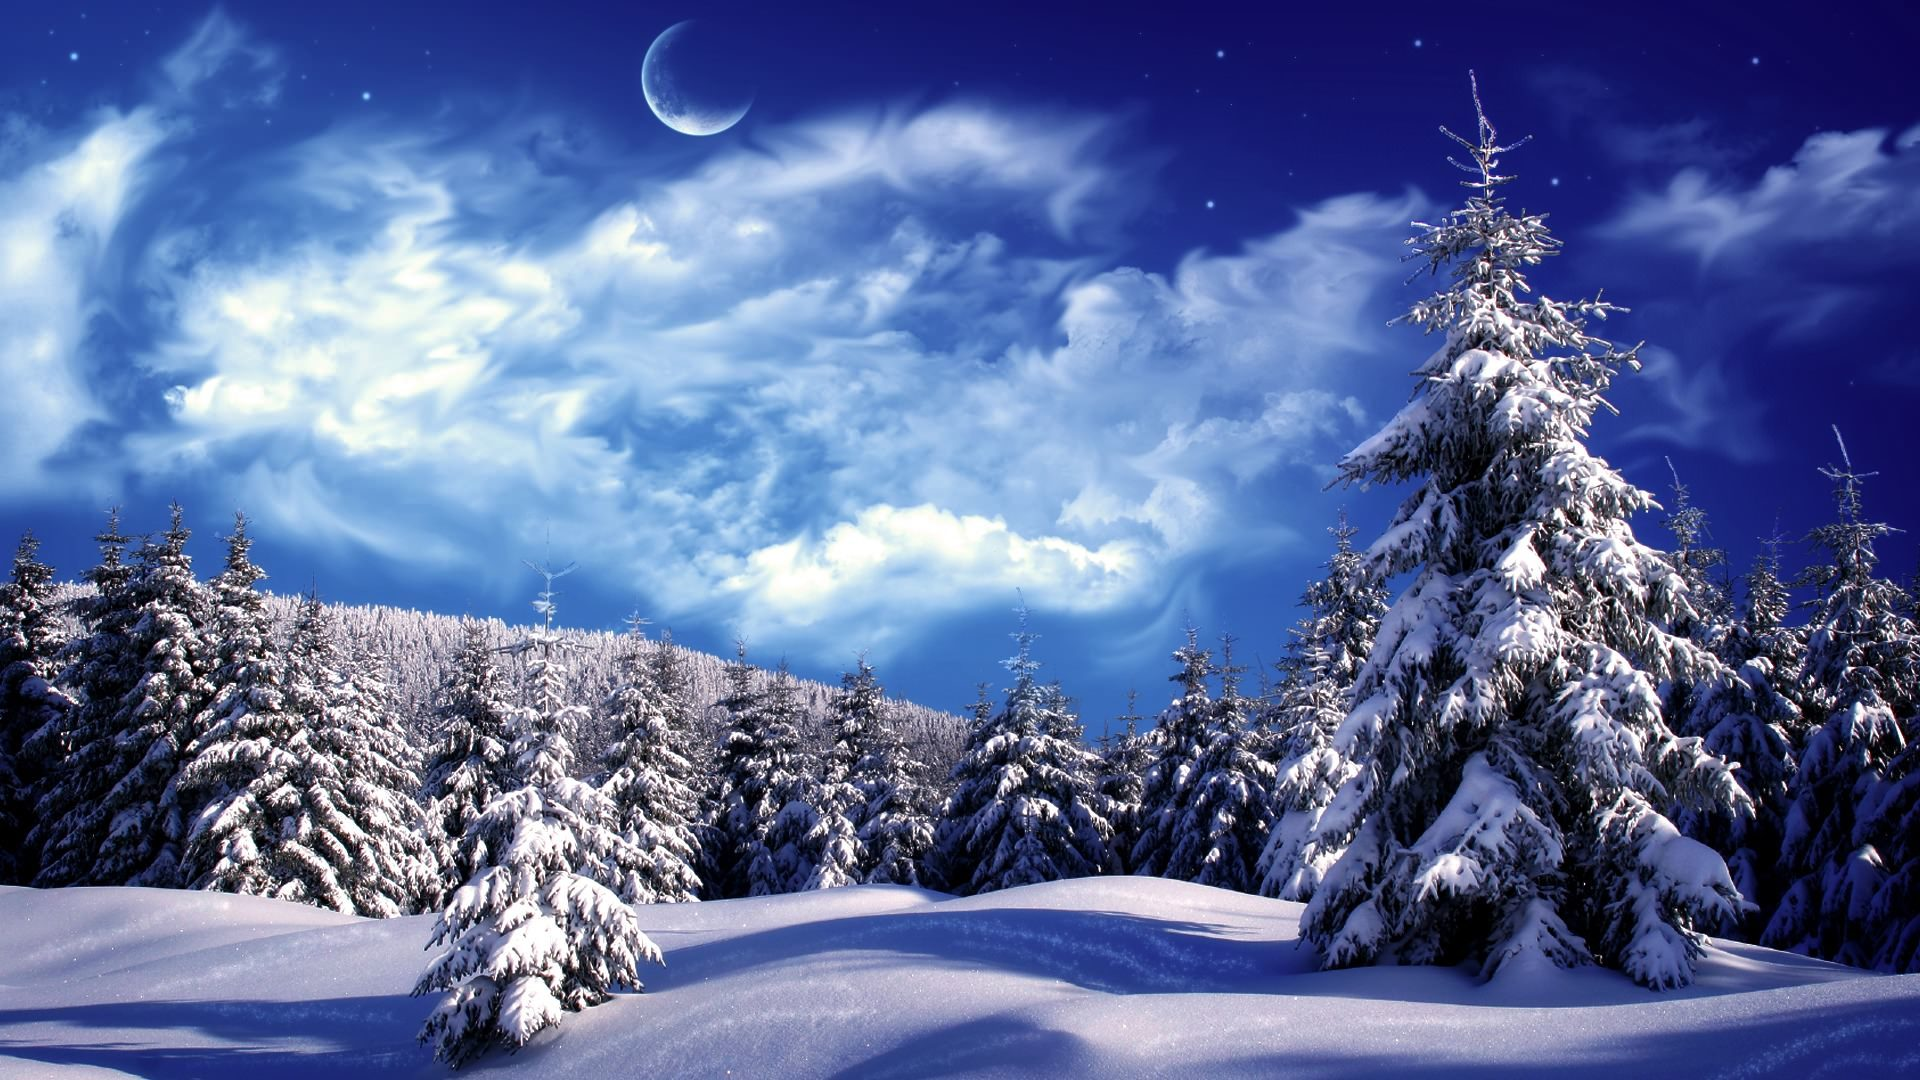 awesome nature wallpapers winter - photo #17